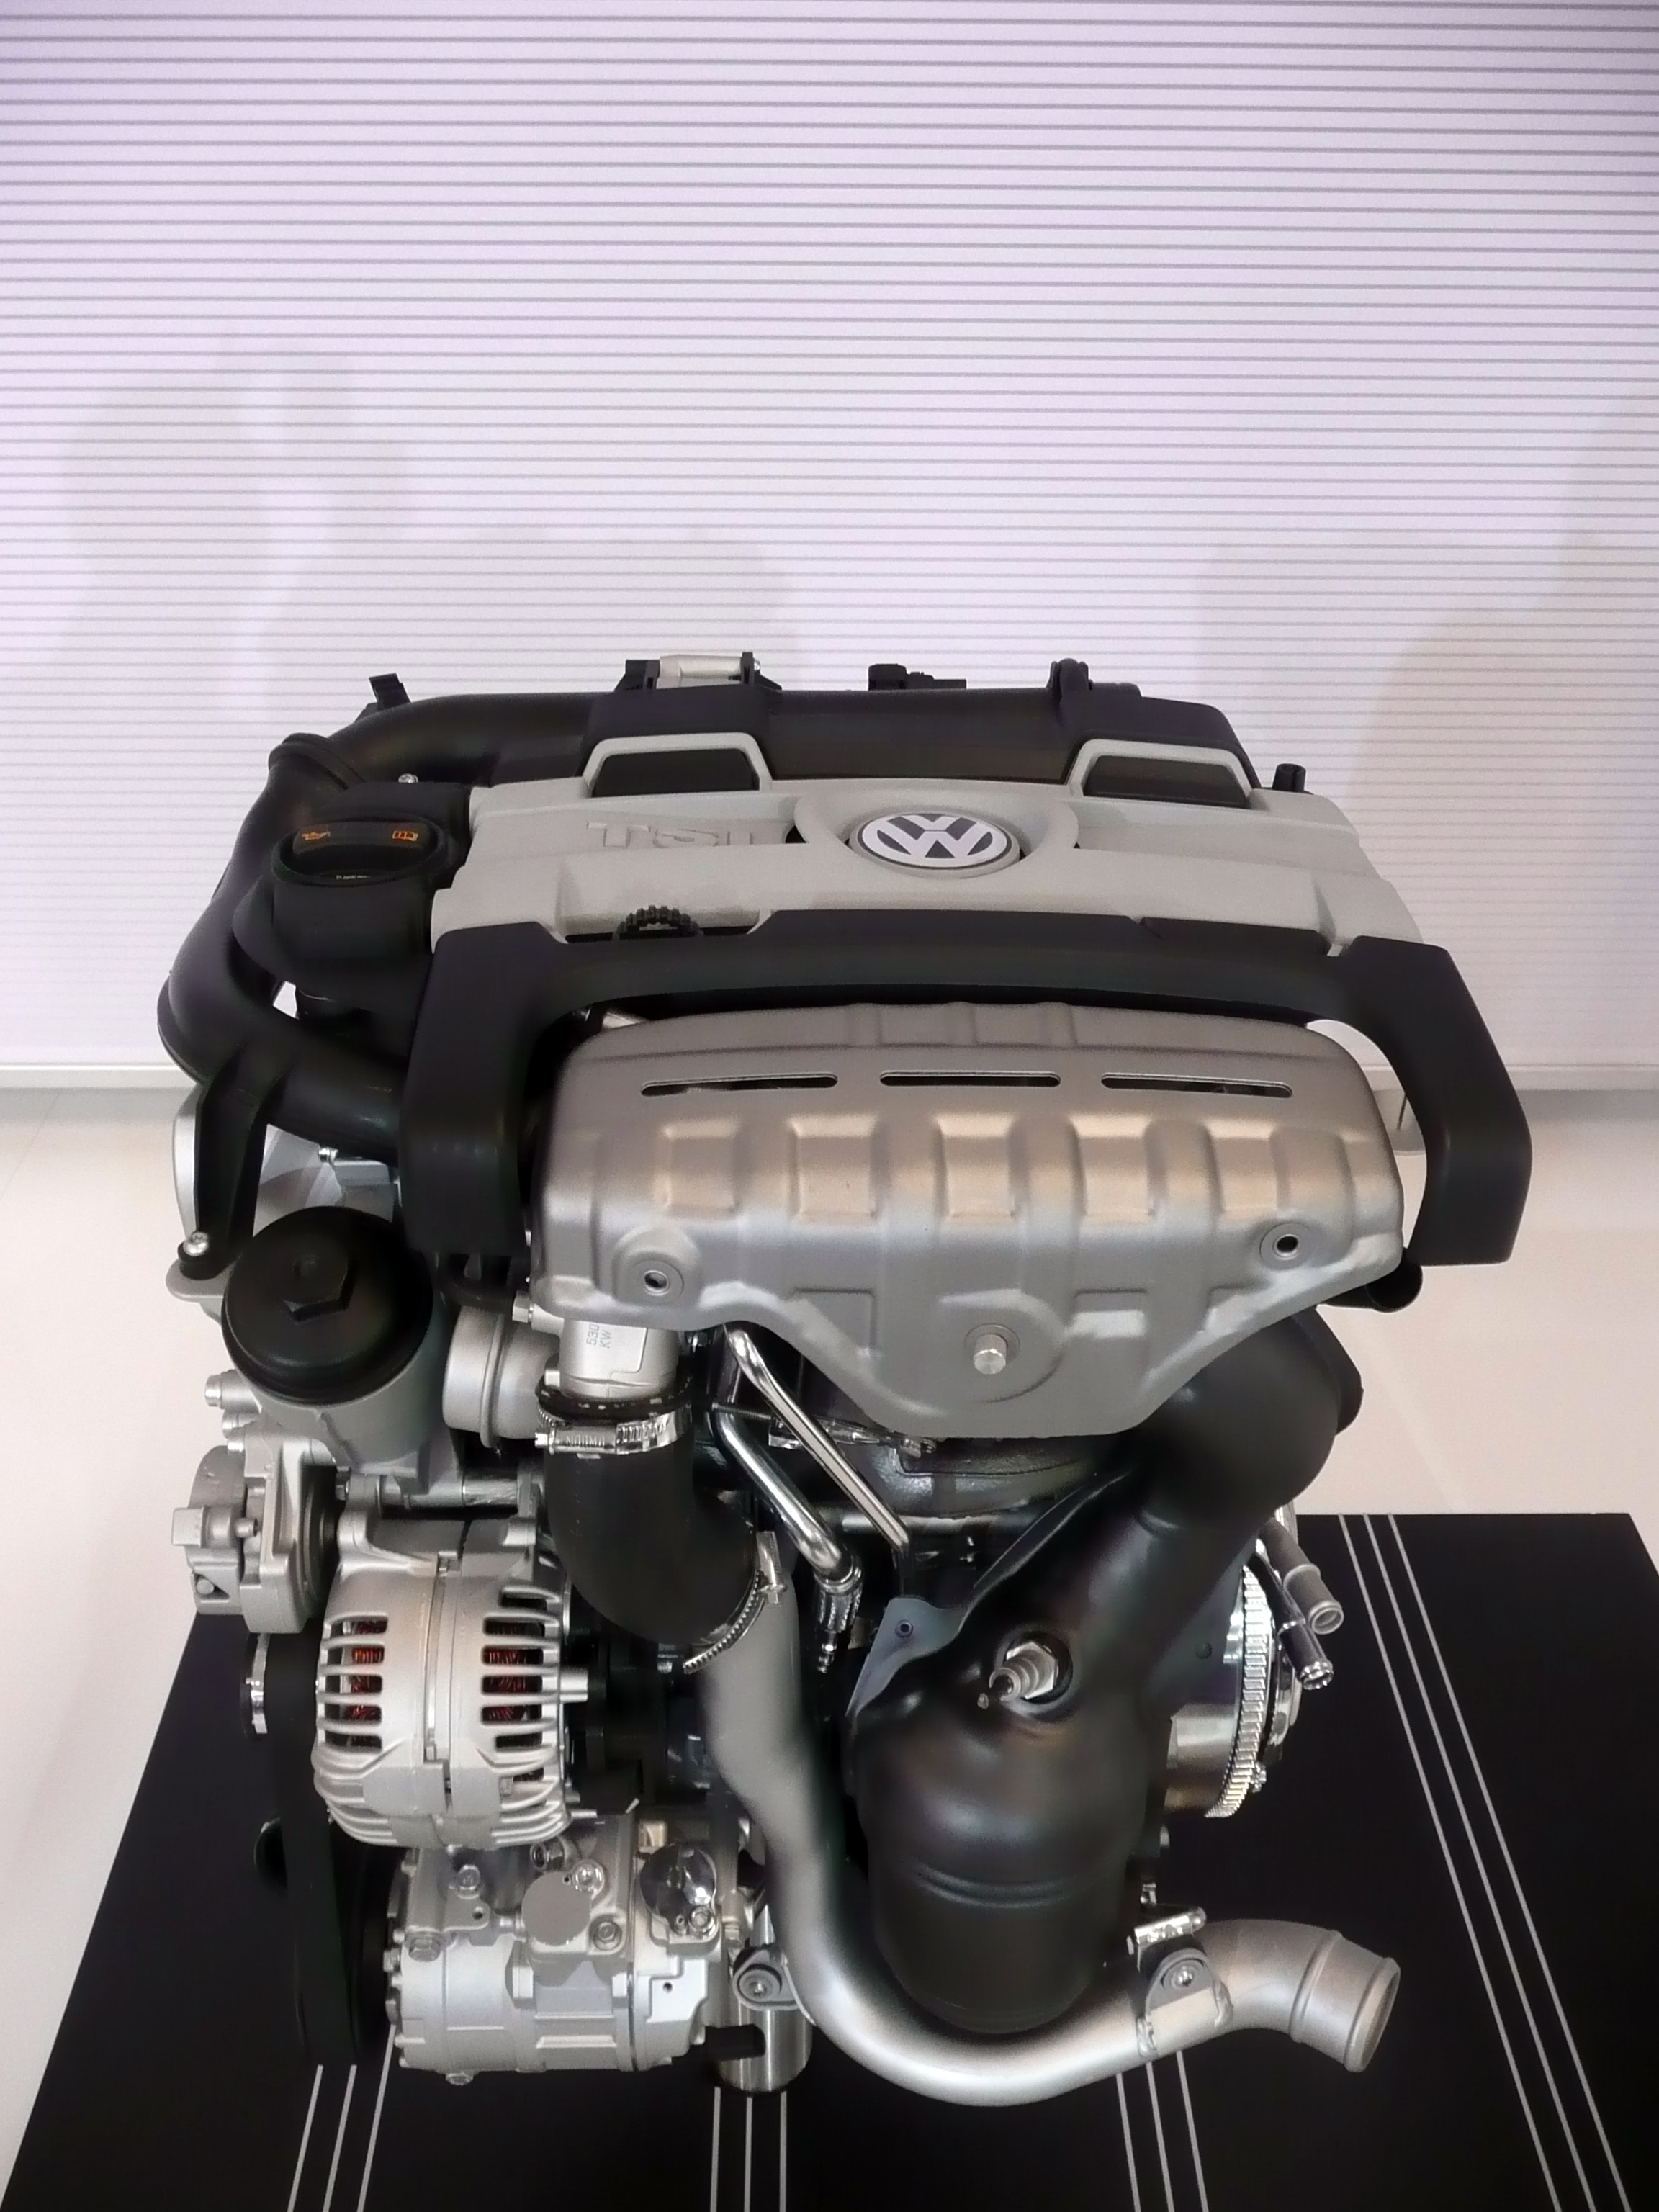 [DIAGRAM_5UK]  List of Volkswagen Group petrol engines - Wikipedia | Vw Audi Engine Diagram |  | Wikipedia